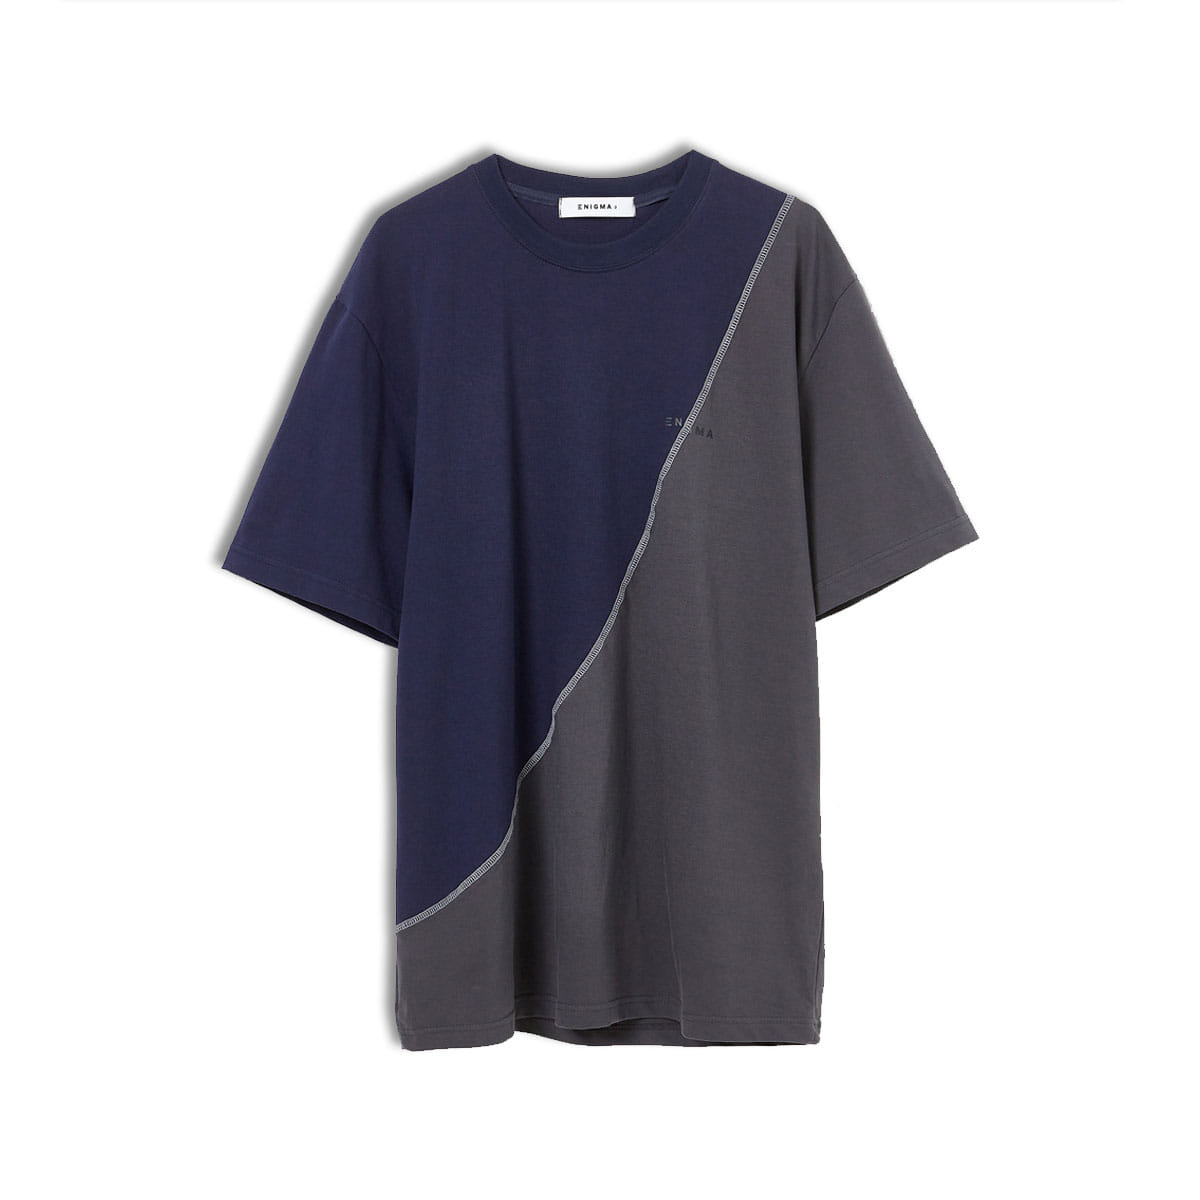 [ENIGMA] REWORK T- SHIRT 'NAVY/CHARCOAL'